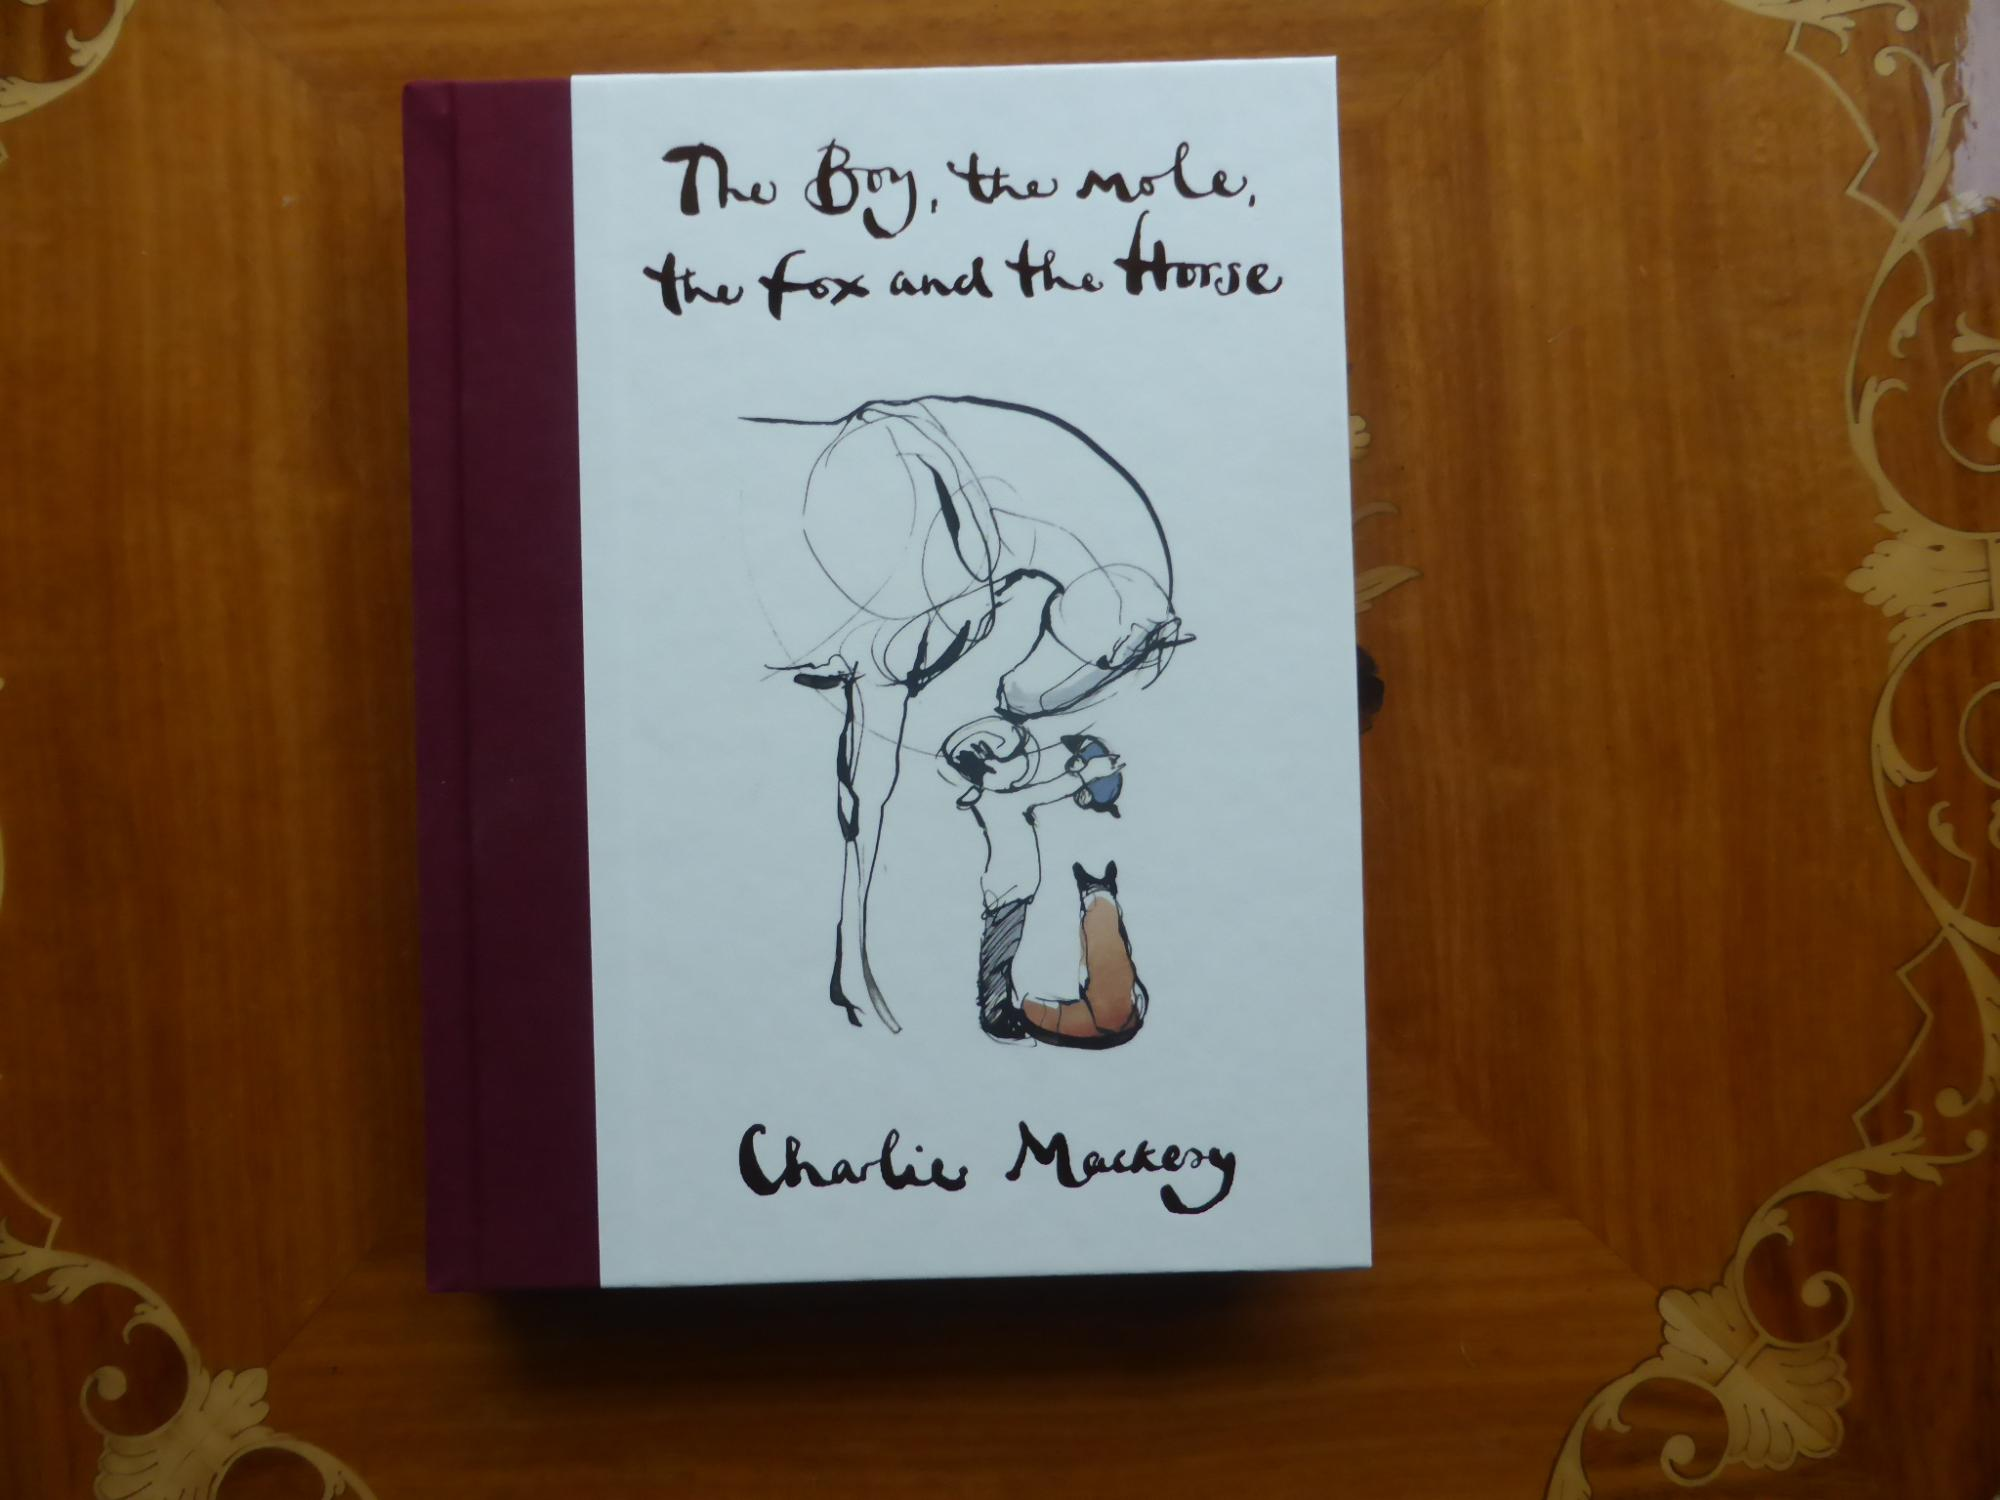 The Boy, the mole,the fox and the Horse : MINT SIGNED & PUBLICATION DAY DATED FIRST EXCLUSIVE EDITION Mackesy Charlie [New] [Hardcover] A mint first printing of the exclusive Waterstones edtion in superbly illustrated boards with maroon linen spine as originally issued. unread gift condition SIGNED and Publication Day DATED 28th Nov 2019 by Charlie Mackesy - his FULL signature not the shortened 'Charlie' he often uses. An outstanding copy of Waterstones Book of the Year and the Literary sensation of 2019. Complete numberline 10987654321 present. BOXED DESPATCH